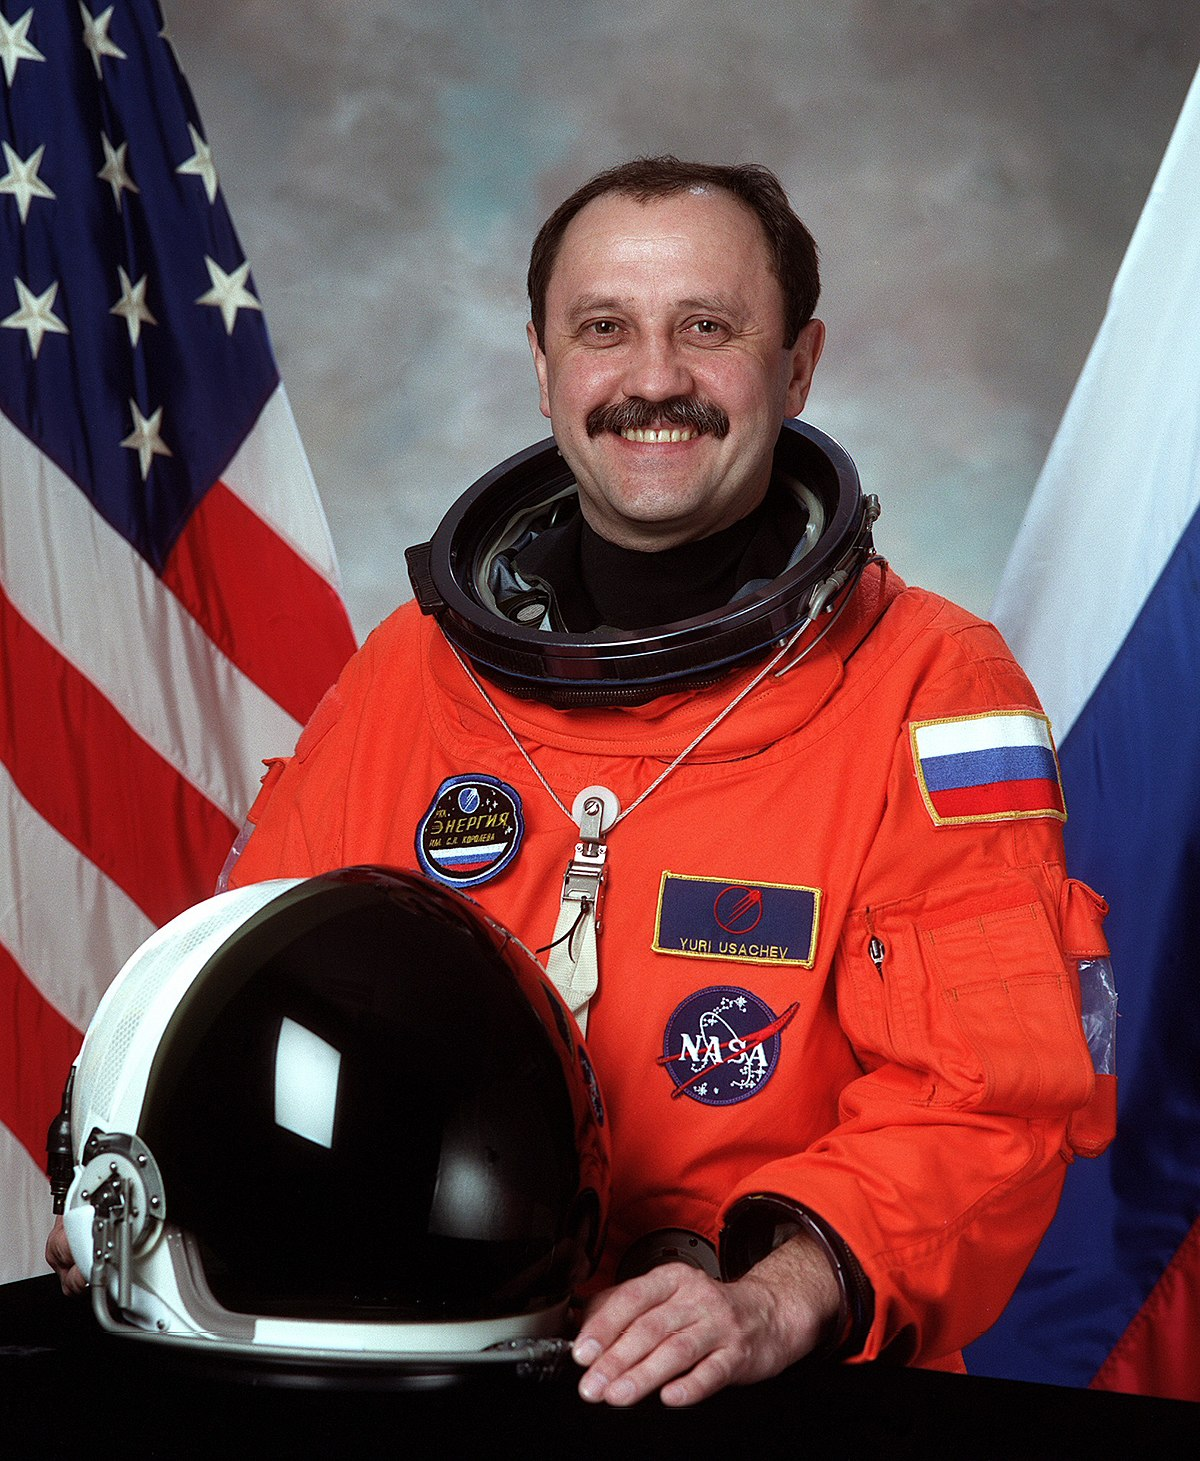 famous astronauts and cosmonauts who contributed in space explorations - photo #45